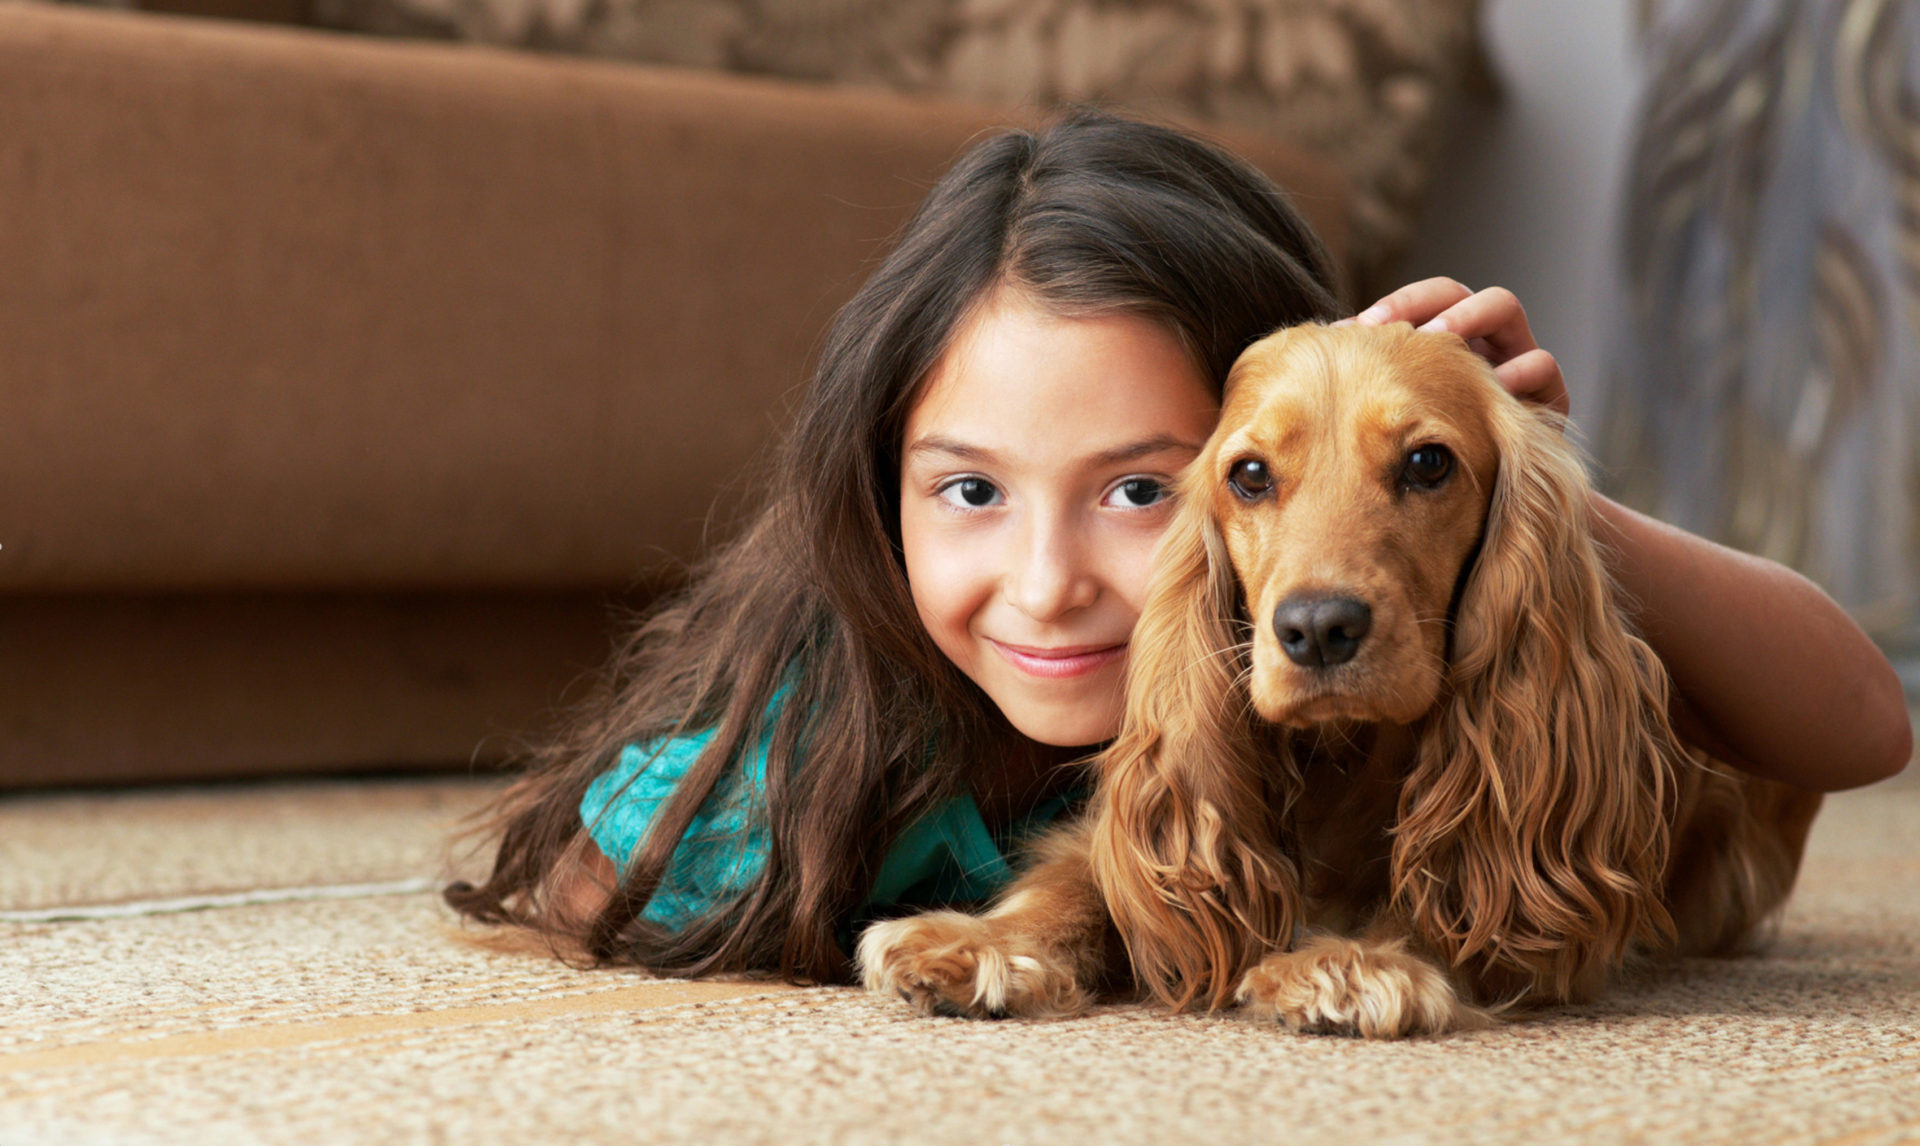 Me and my pet